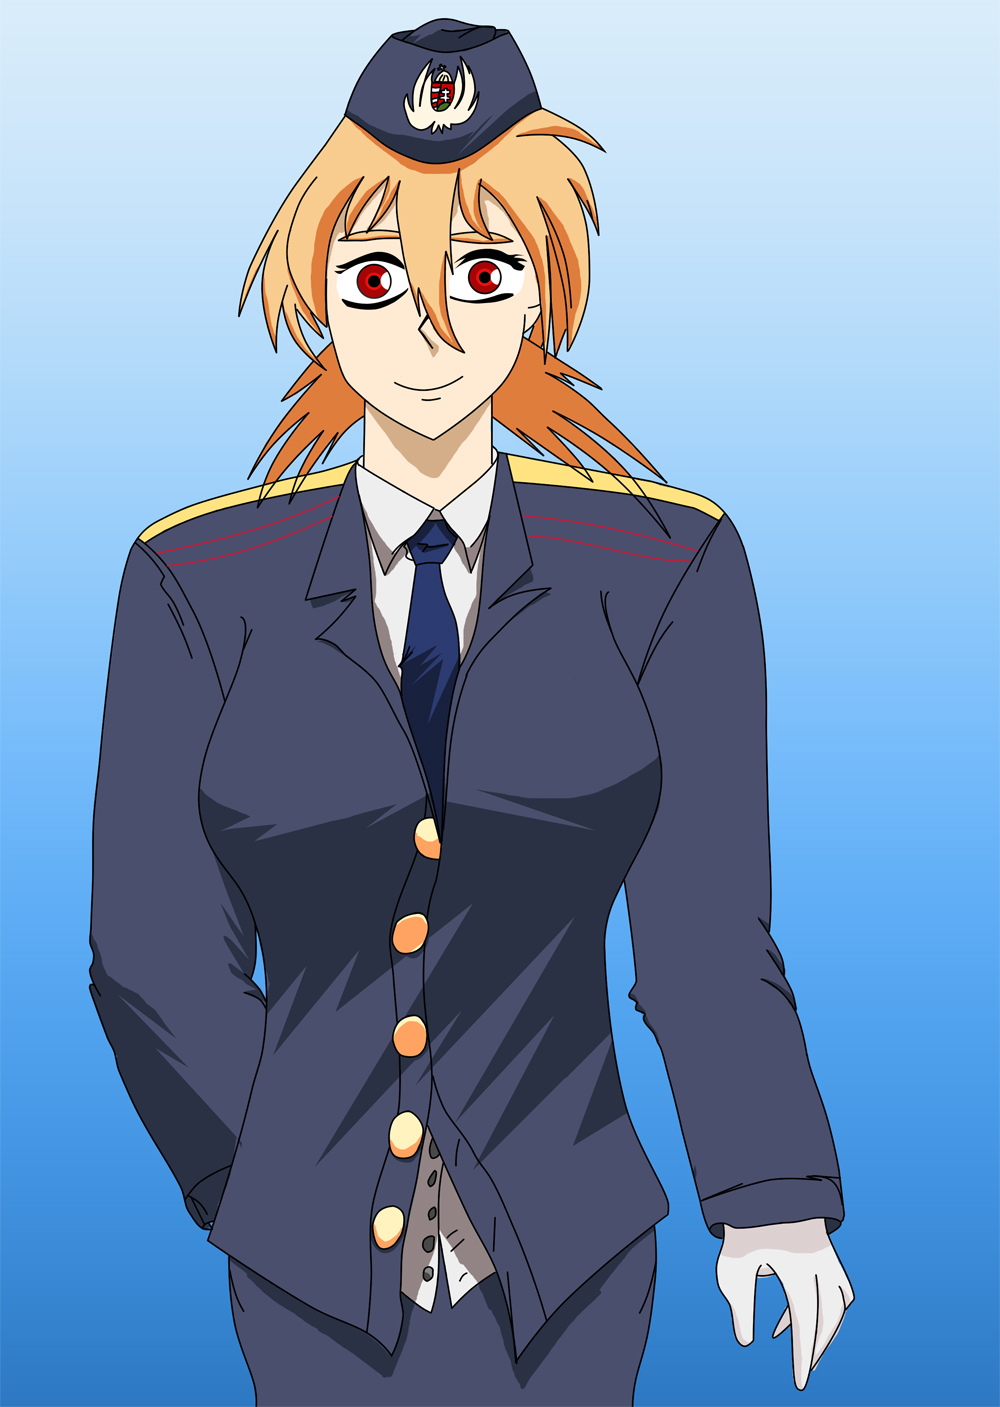 Seras Victoria in Uniform by dani0001